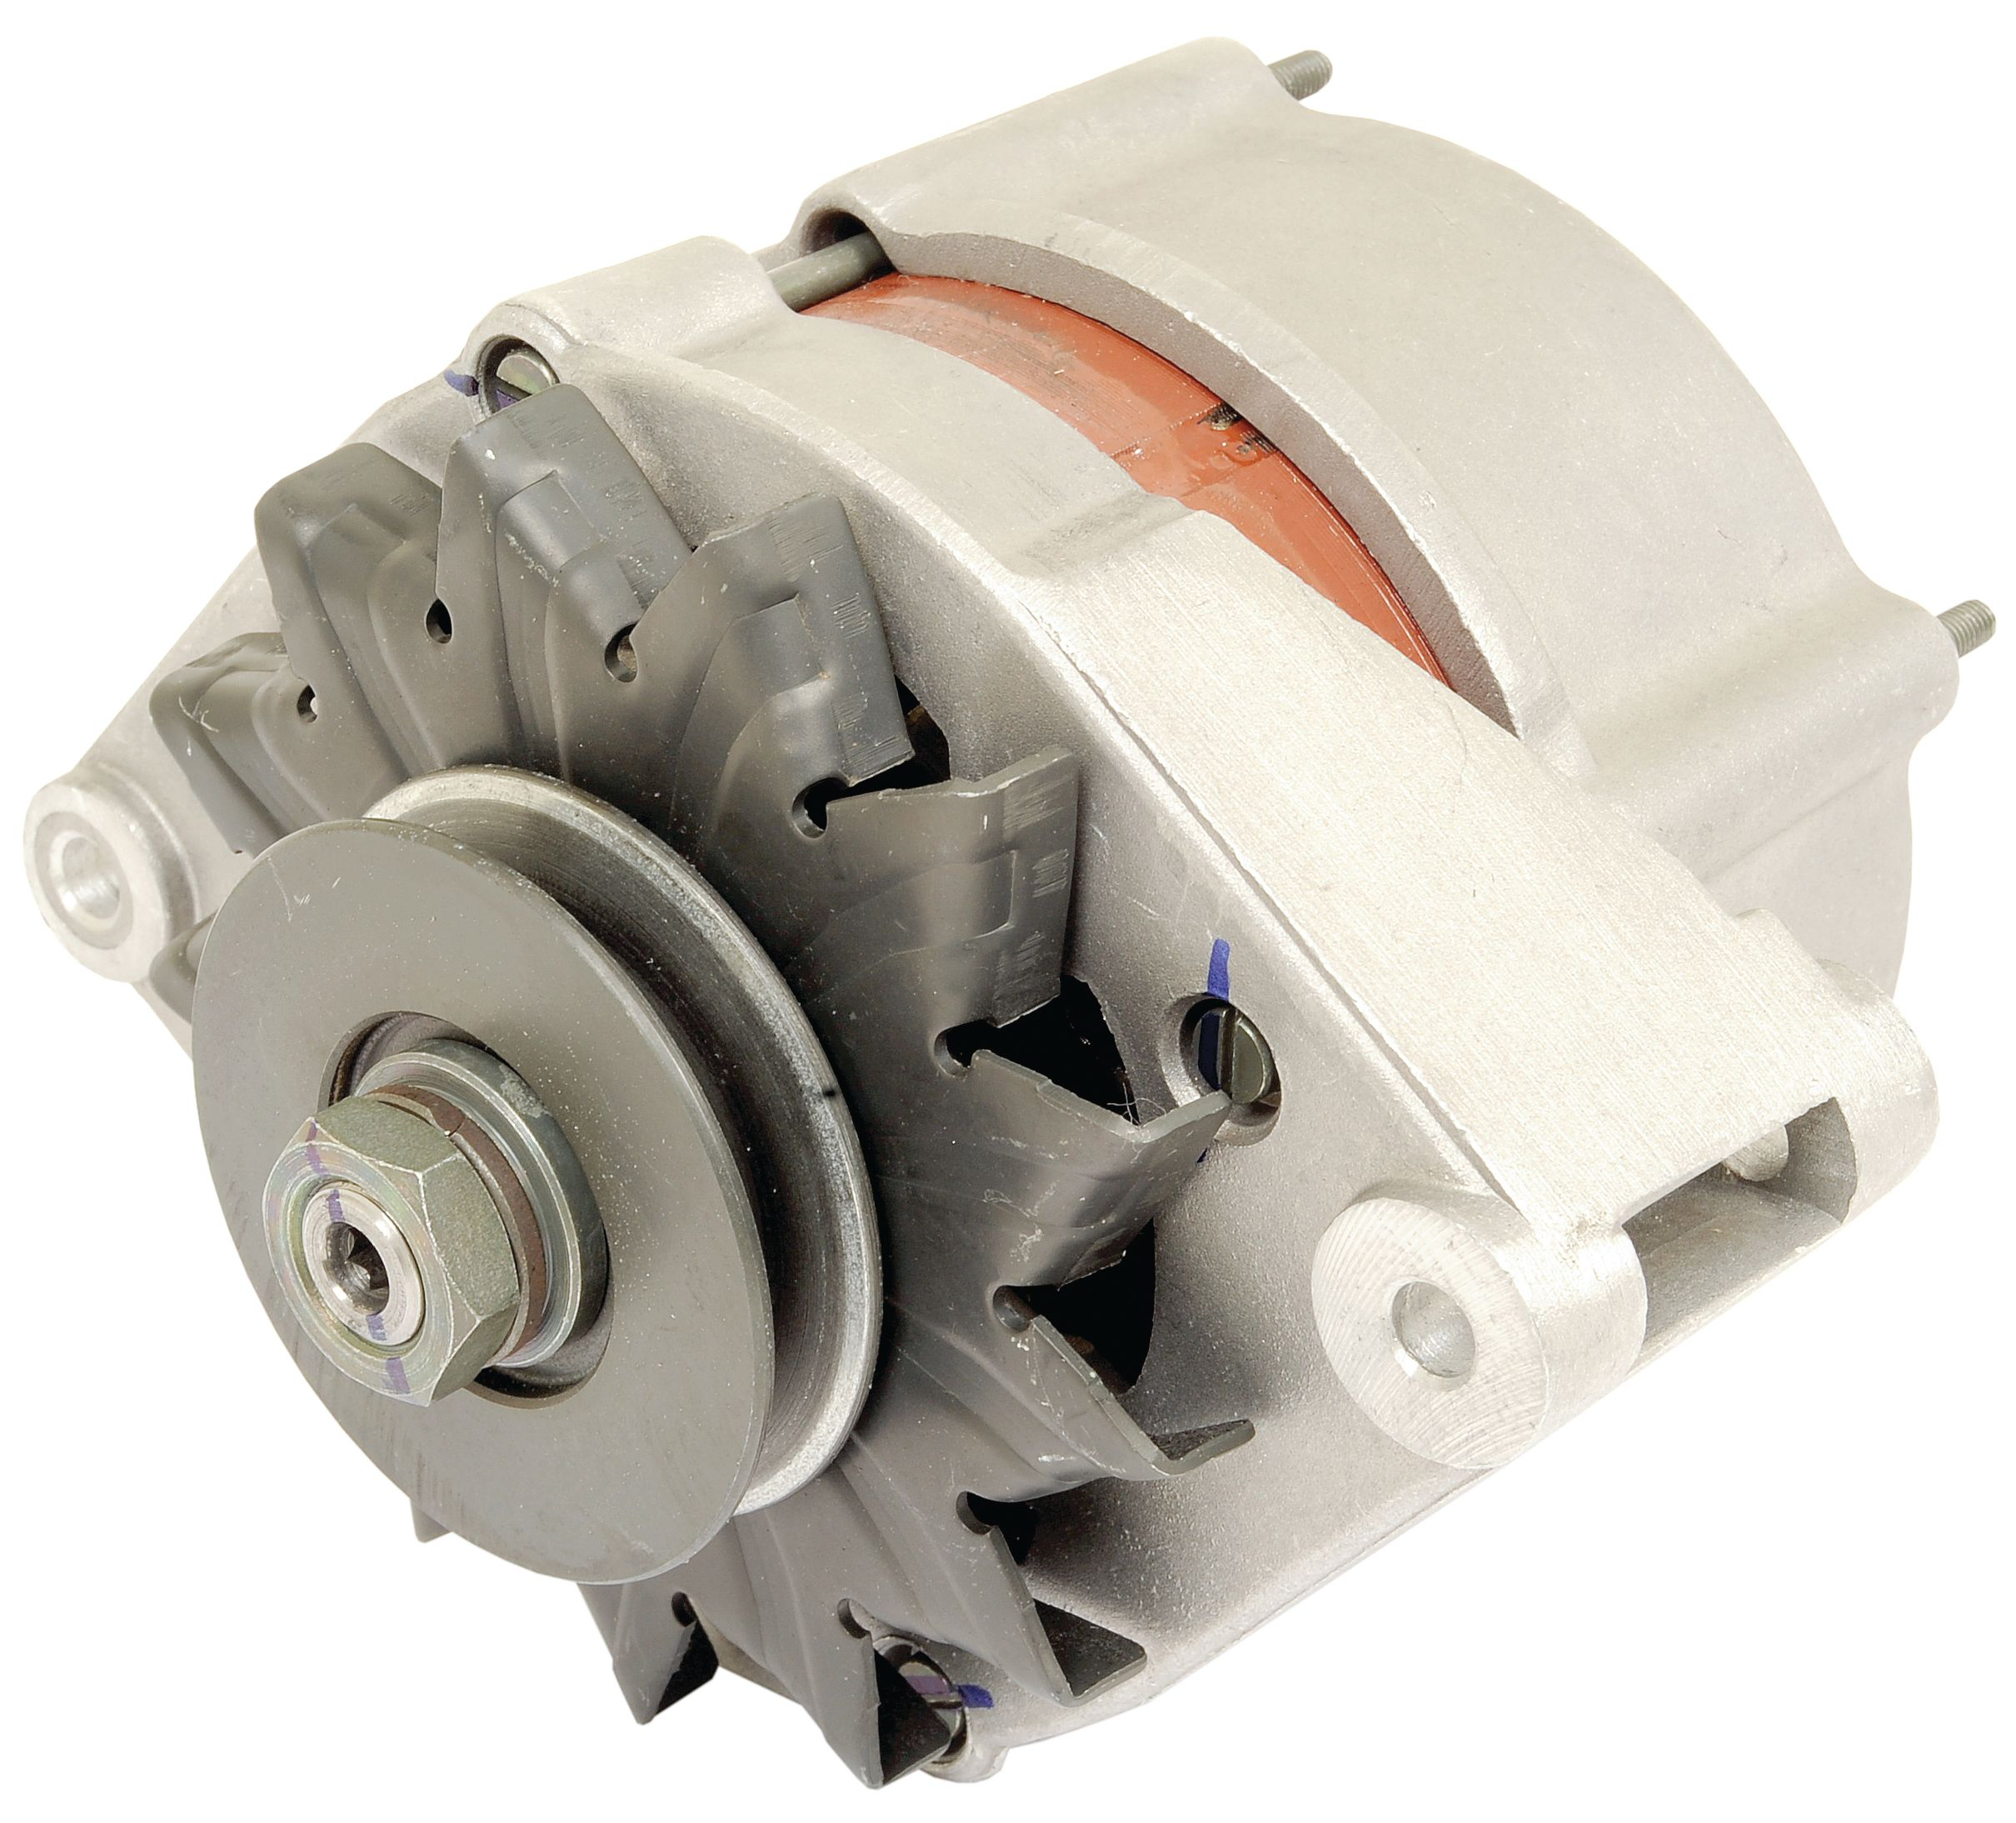 EICHER ALTERNATOR 359501